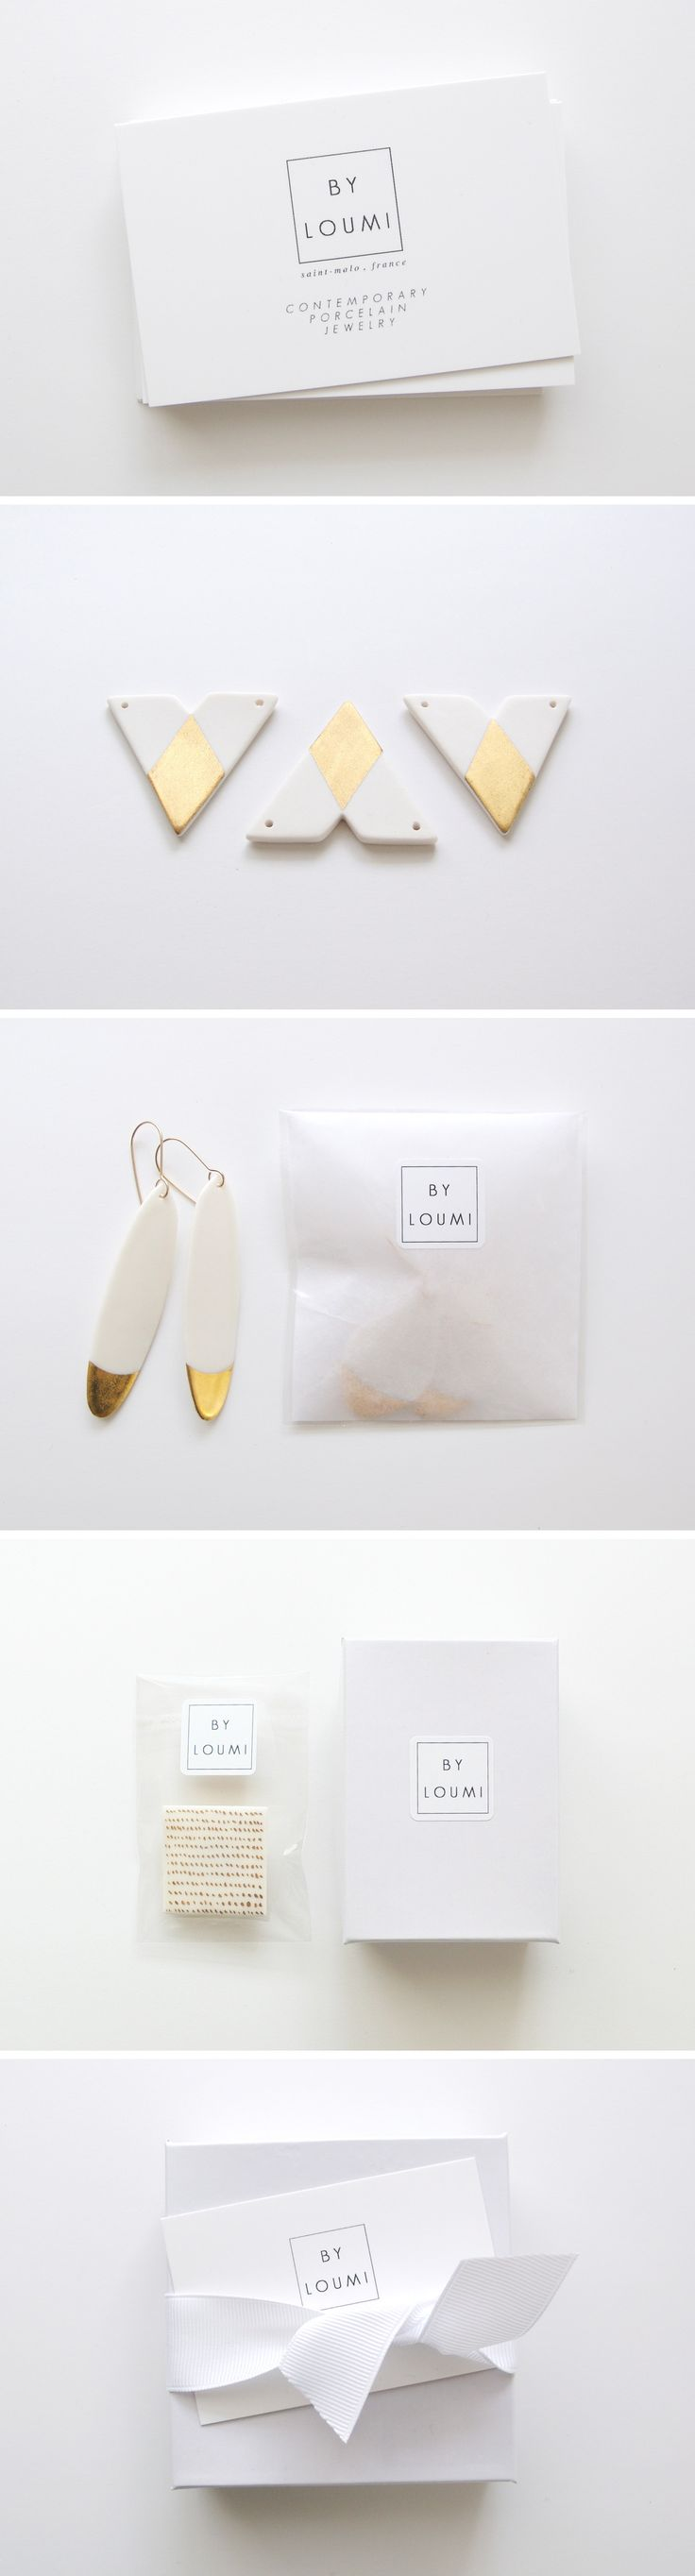 Packaging from By Loumi jewelry. porcelain jewelry, with gold accents    < taste > girly  simple / / elegant < media material > package  typography / logo etc…  < layout > layoutで分類した後にさらに分類   分類した後にさらに分類   < shape > geometric  < decoration > 分類した後にさらに分類